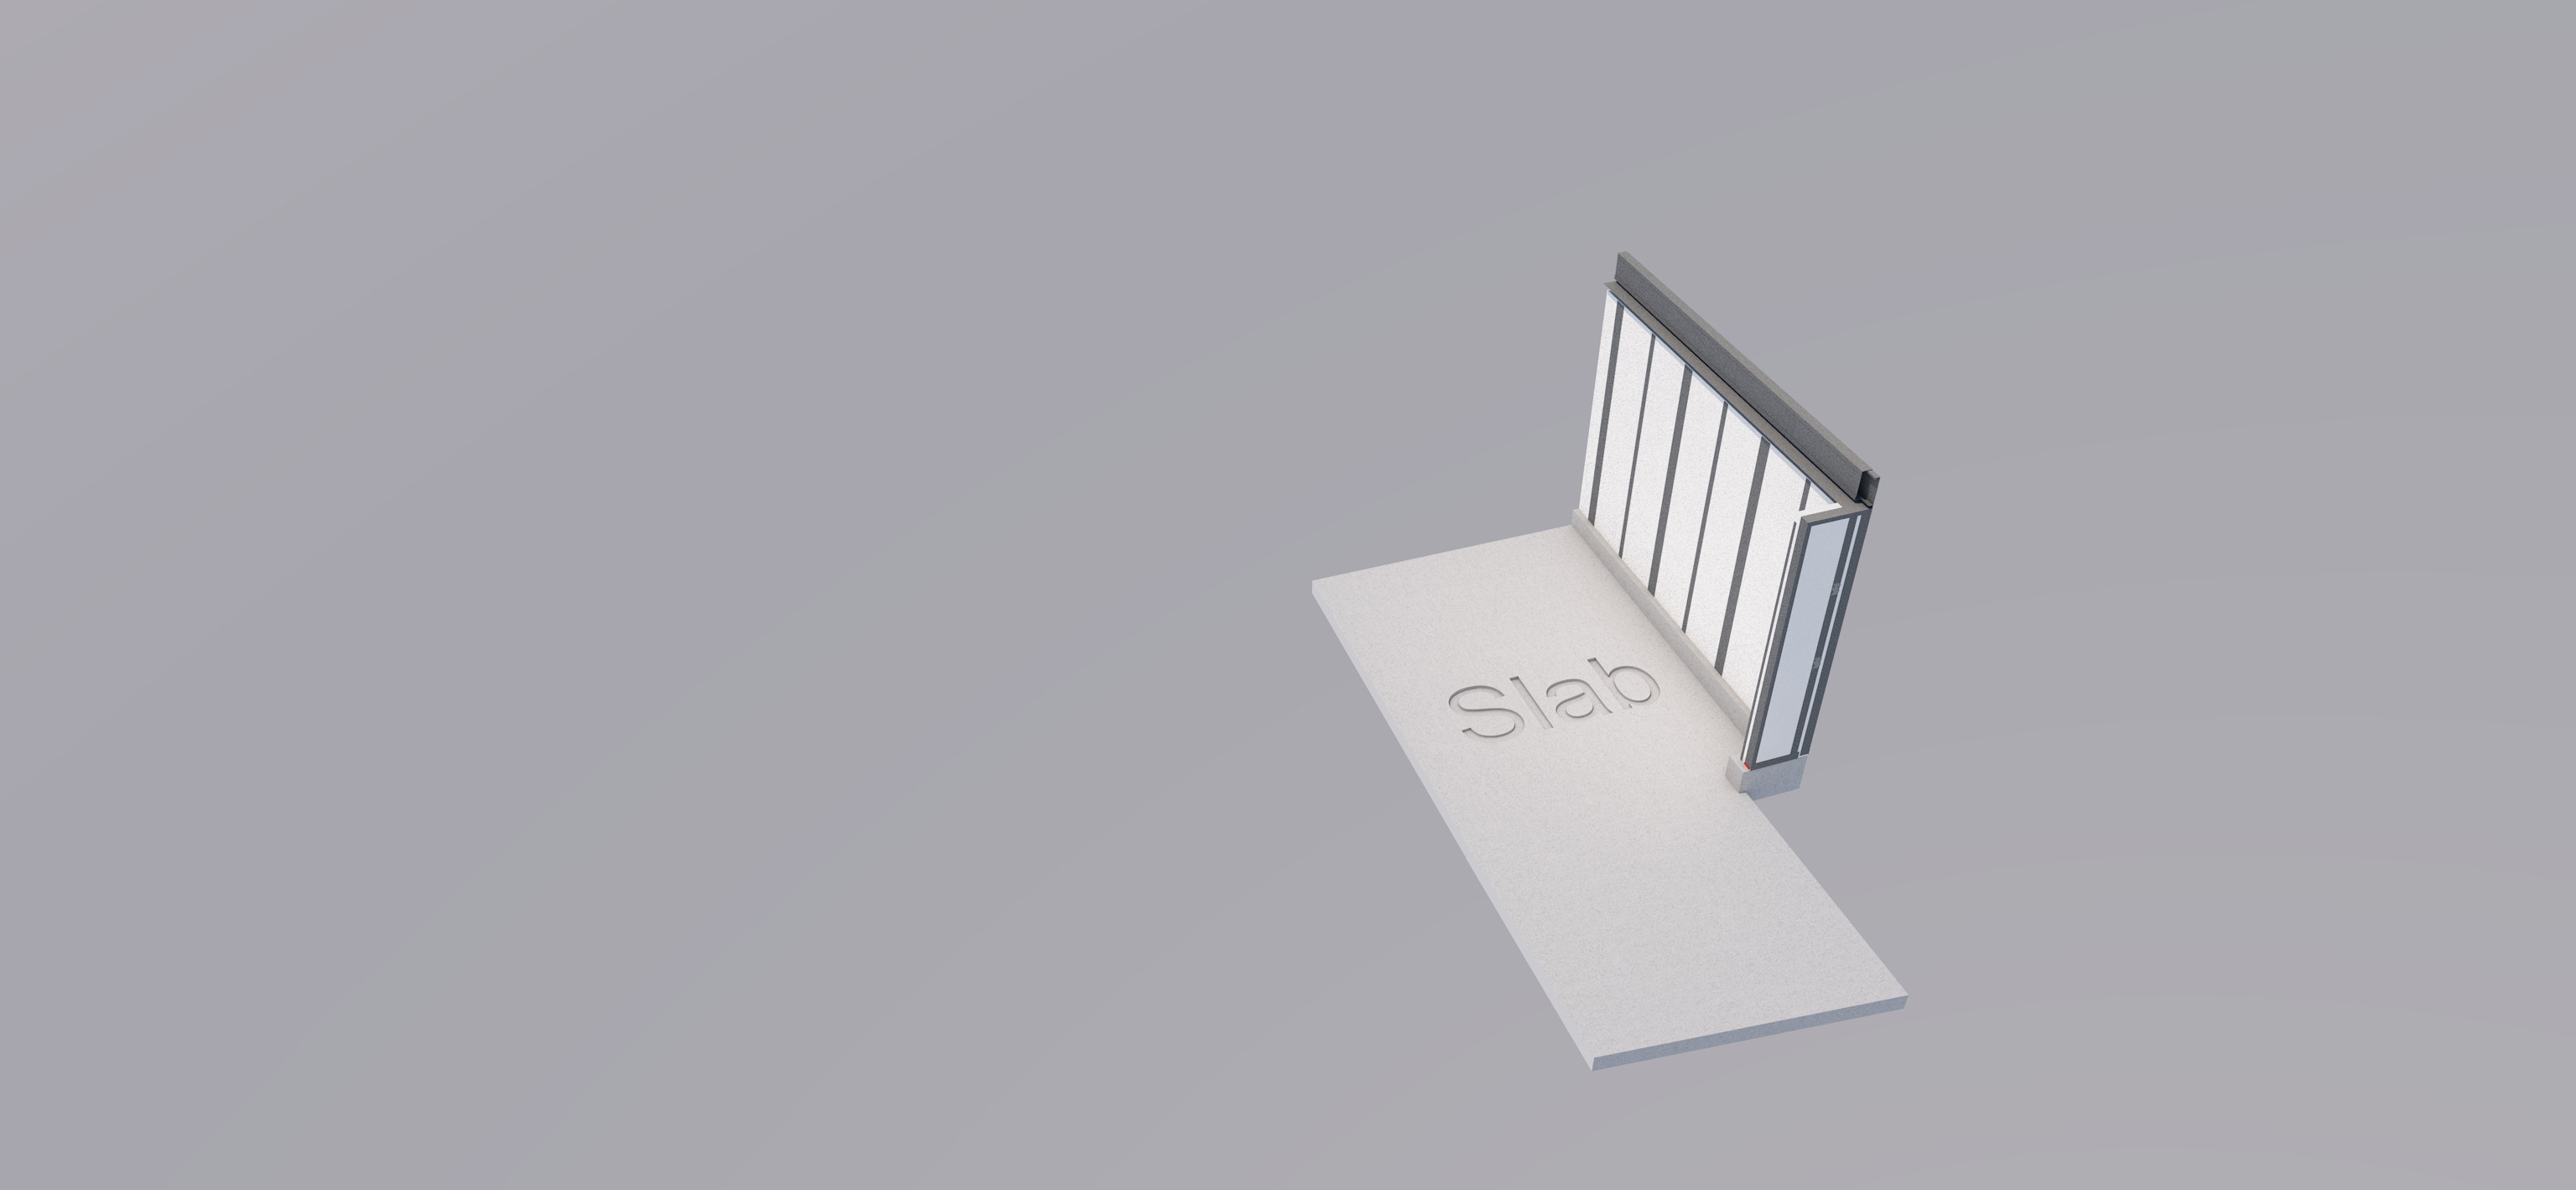 In this technical documentation I developed to accompany the BIM tool I developed for a design  firm, I made extensive use of perspective views, including perspective sections and details, to convey complex spatial relationships efficiently and clearly.